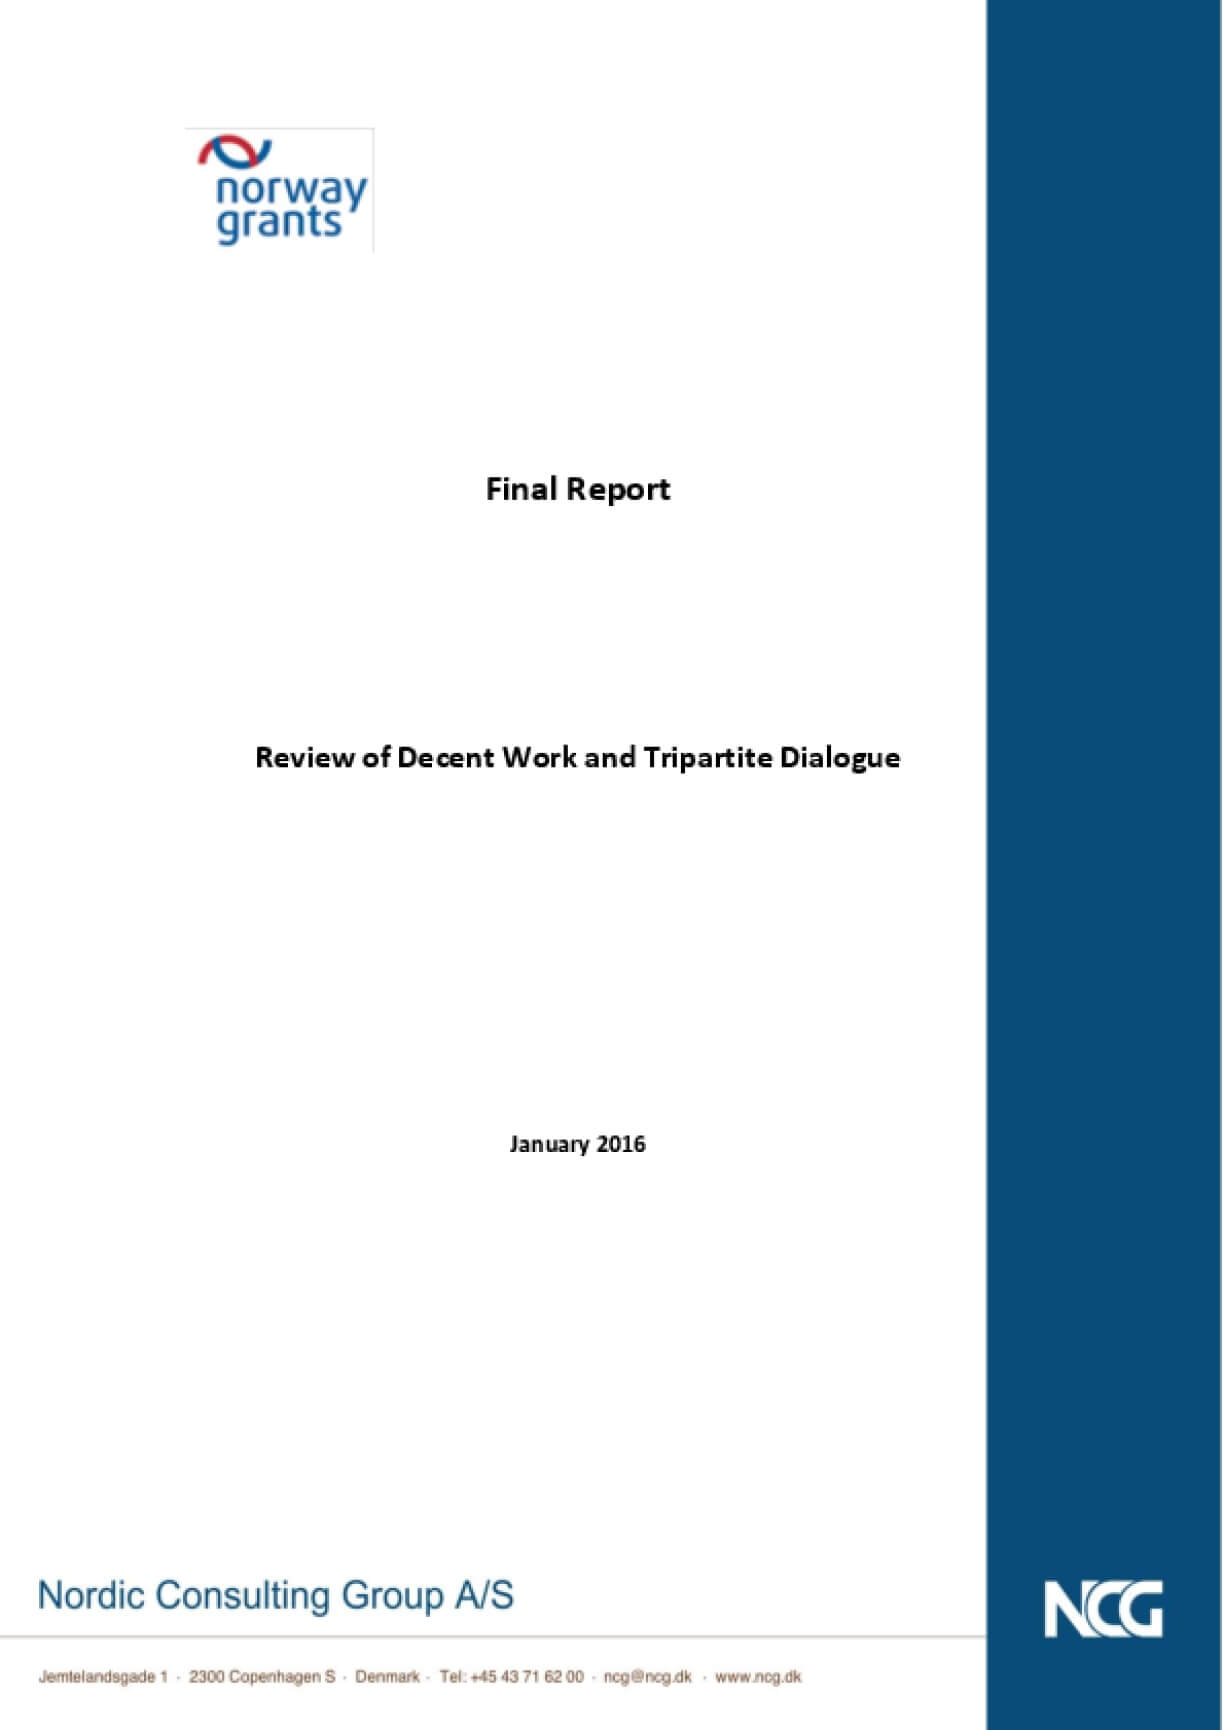 Final Report: Review of Decent Work and Tripartite Dialogue